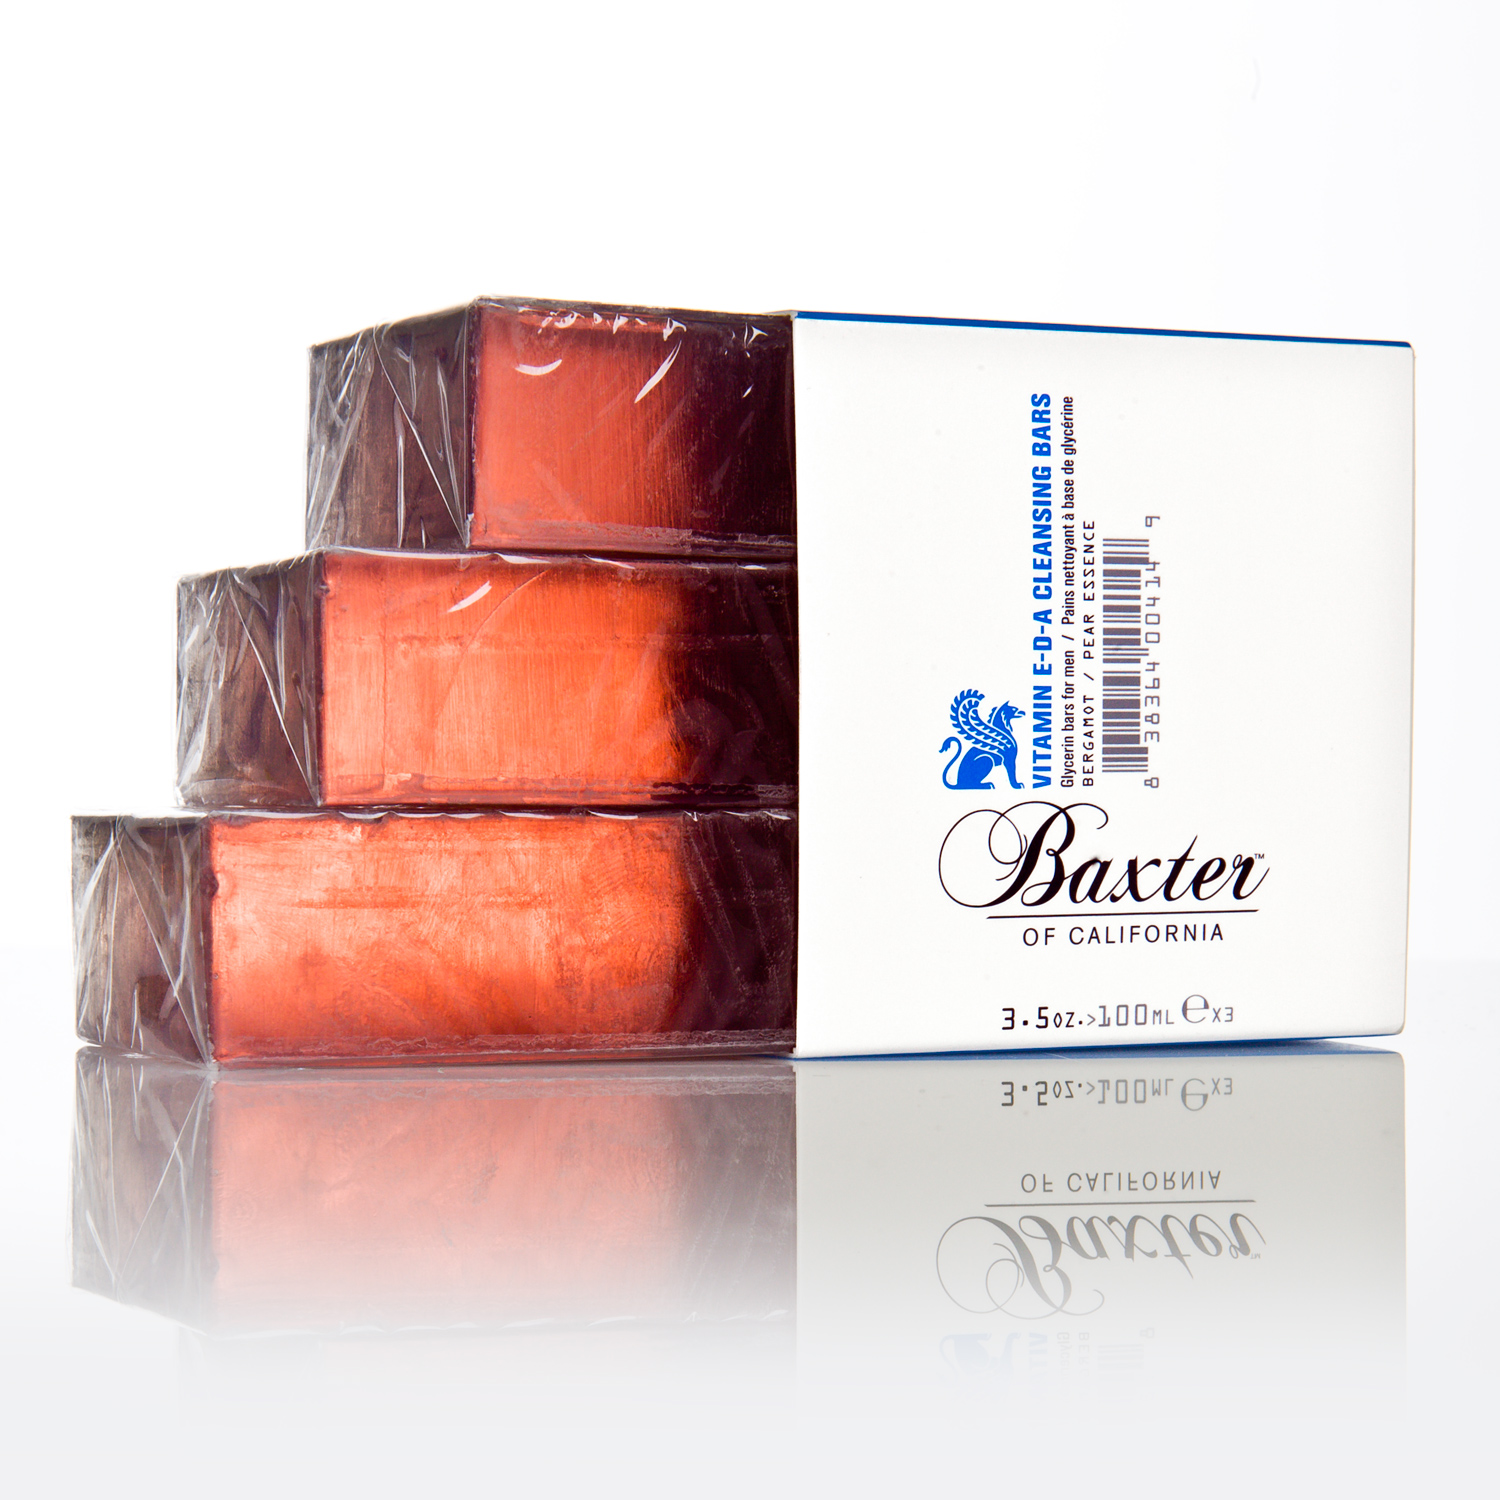 Baxter of California, Cleansing Bars